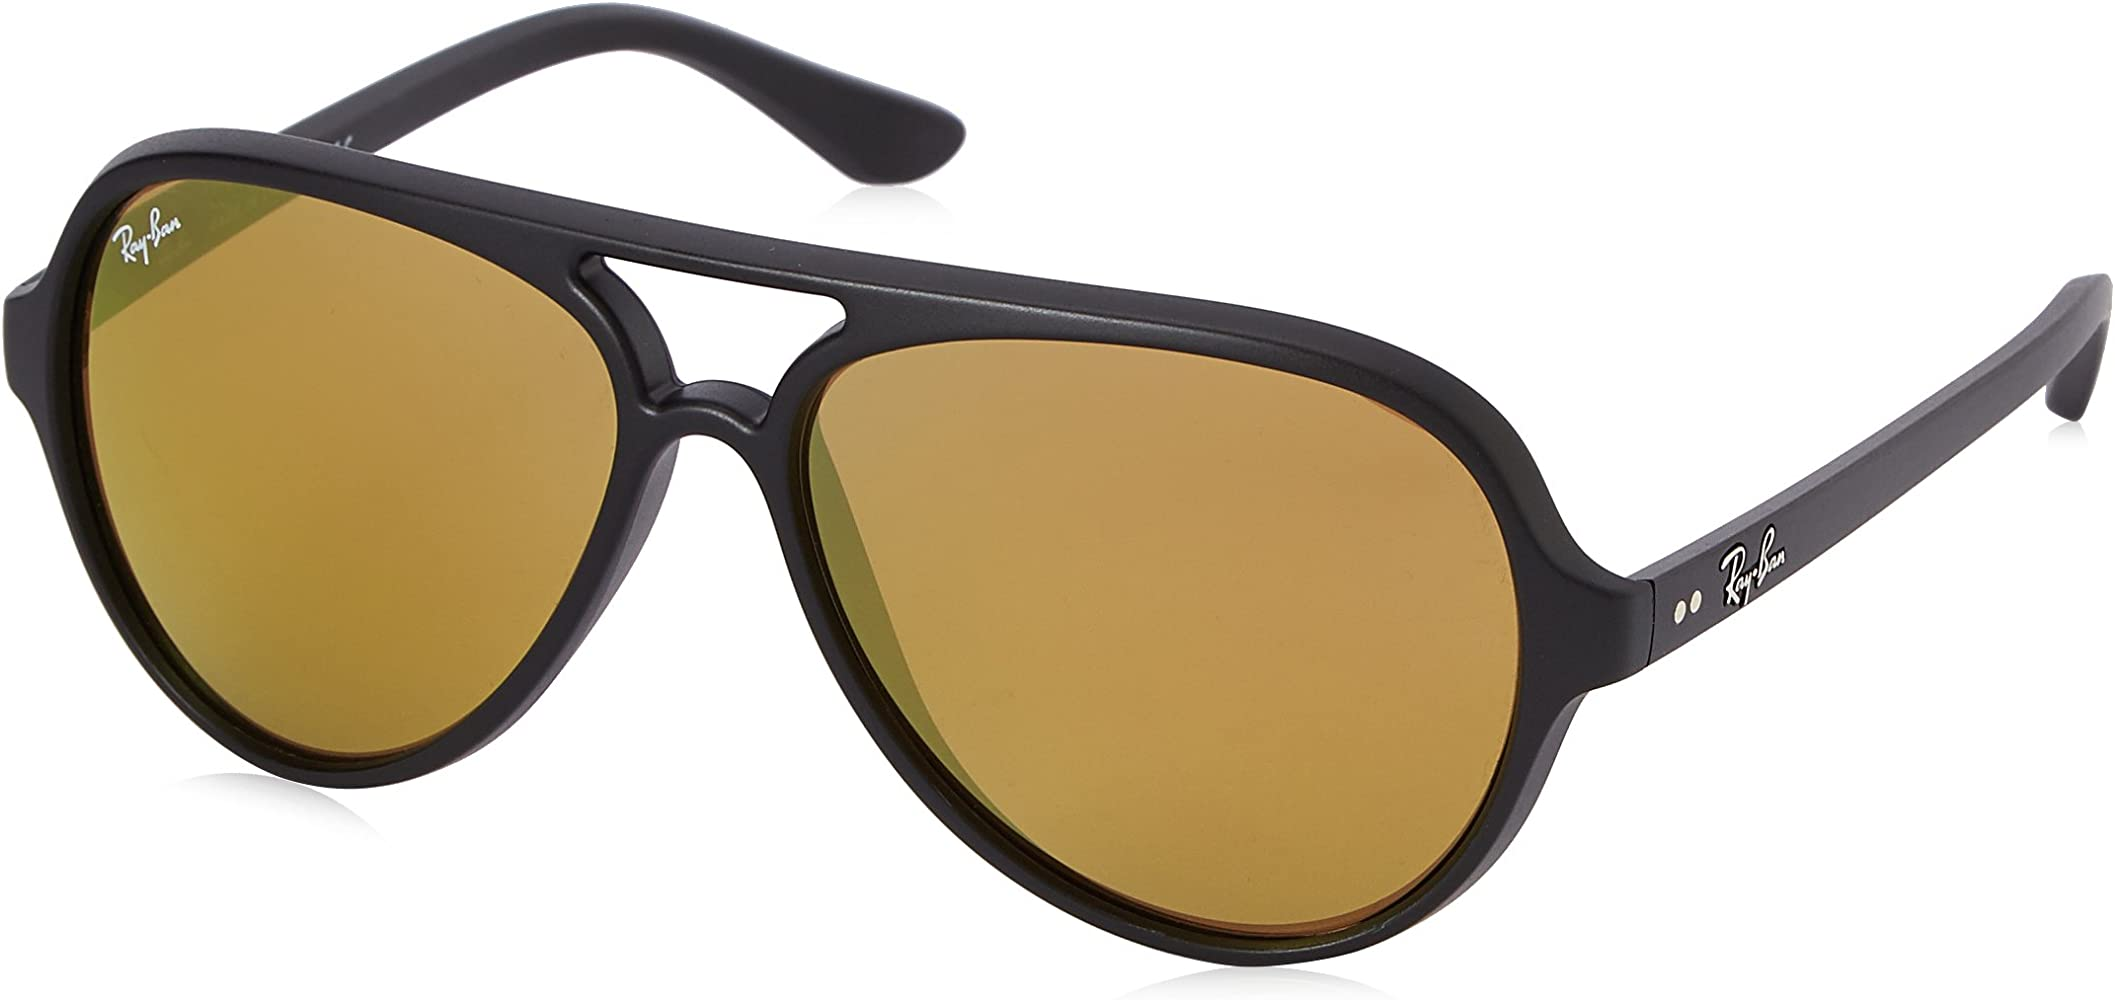 Ray-Ban Junior 0RB4125 601S93 59 Gafas de sol, Matte Black/Brown ...